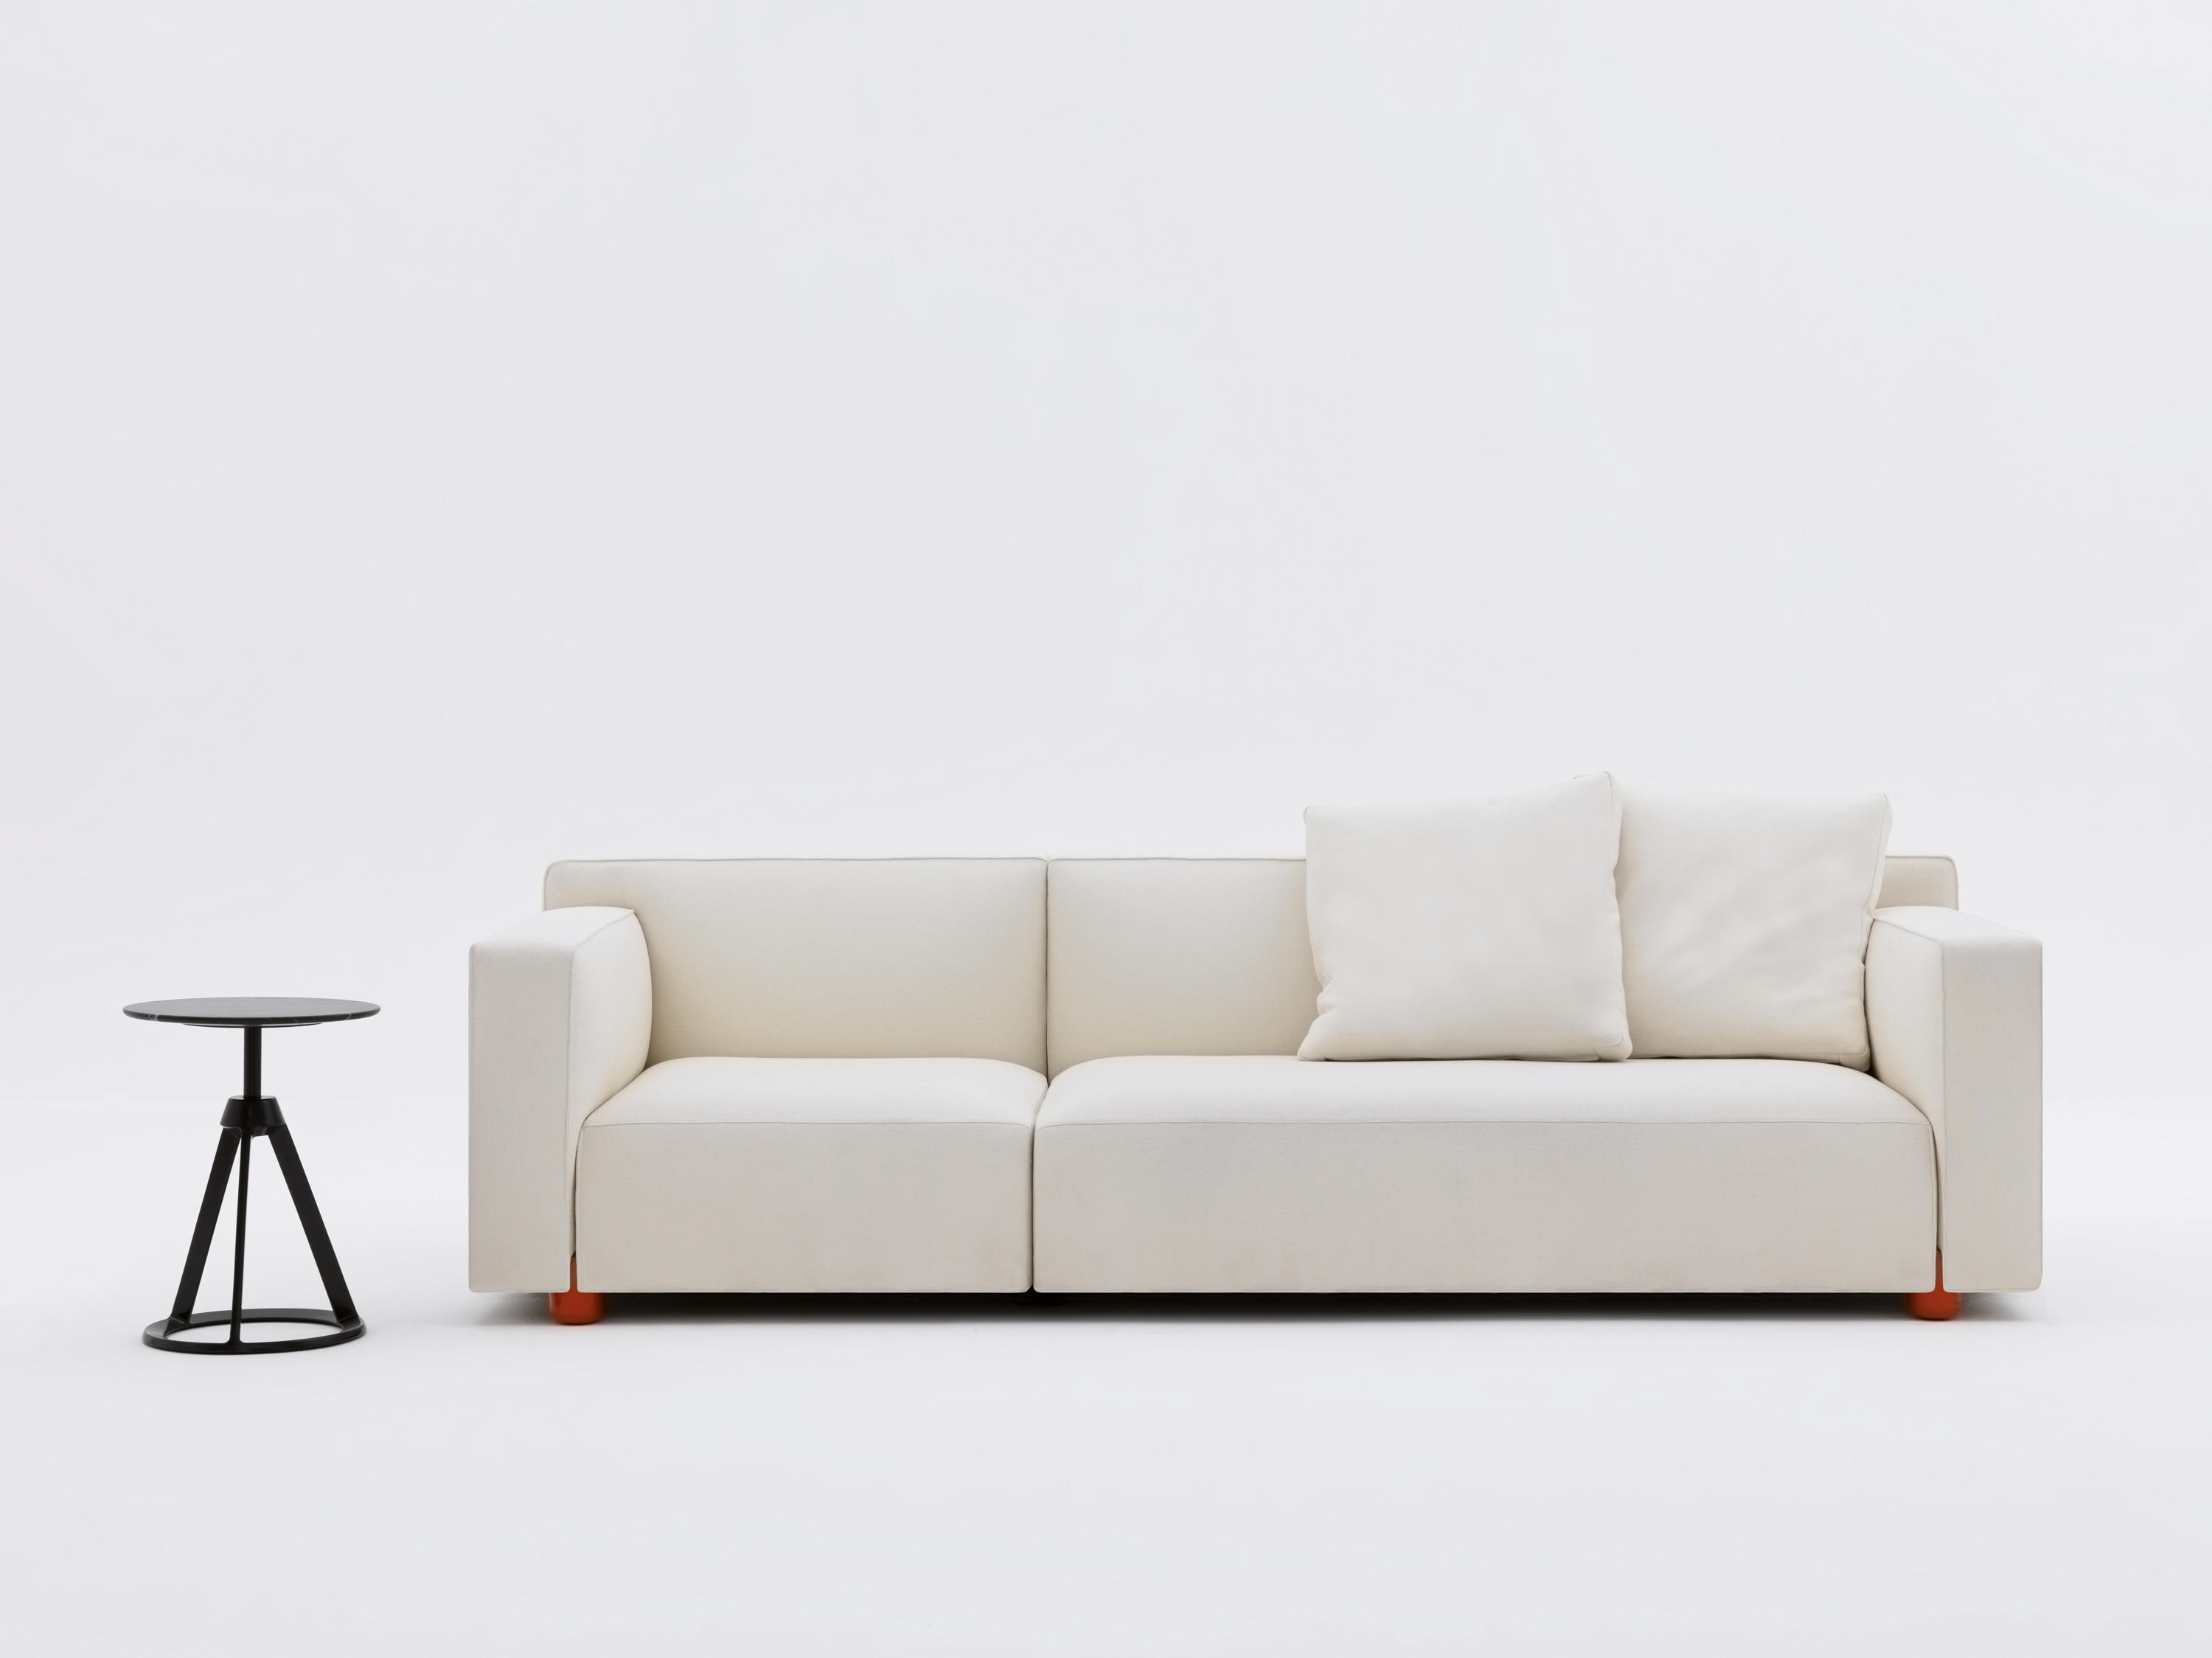 Sofa Collection By Edward Barber Amp Jay Osgerby Sofa